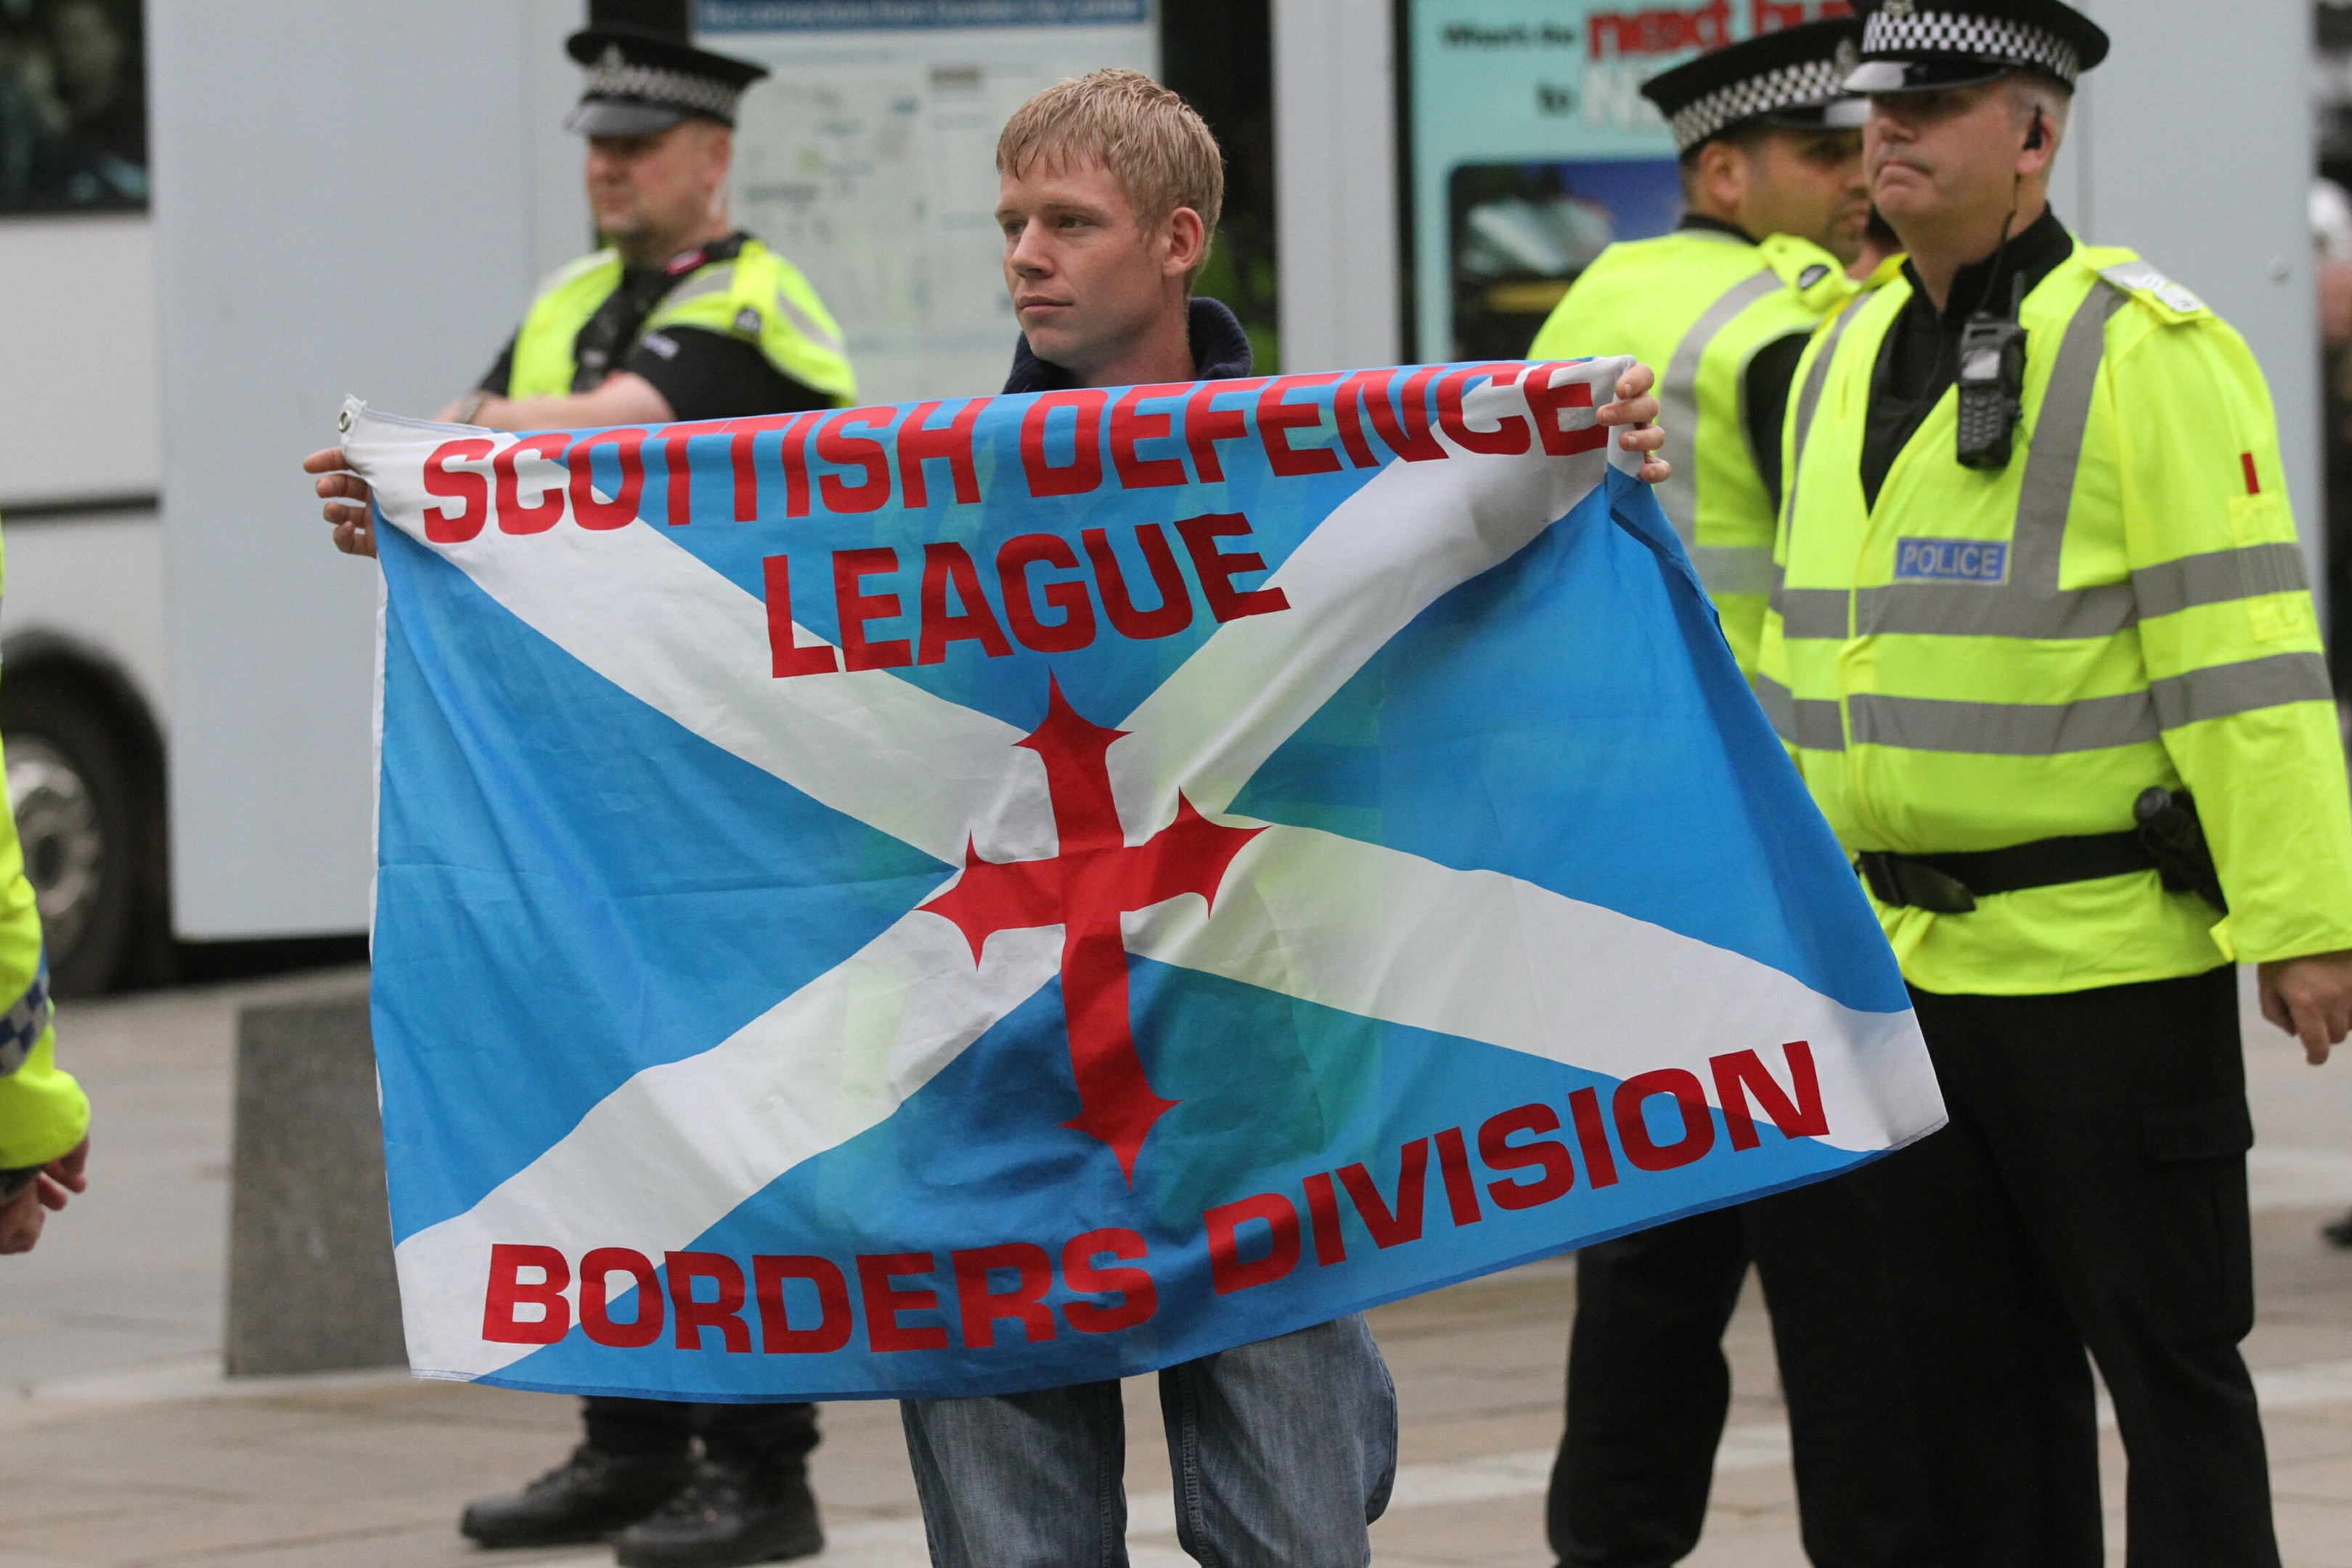 A Scottish Defence League at a previous rally.